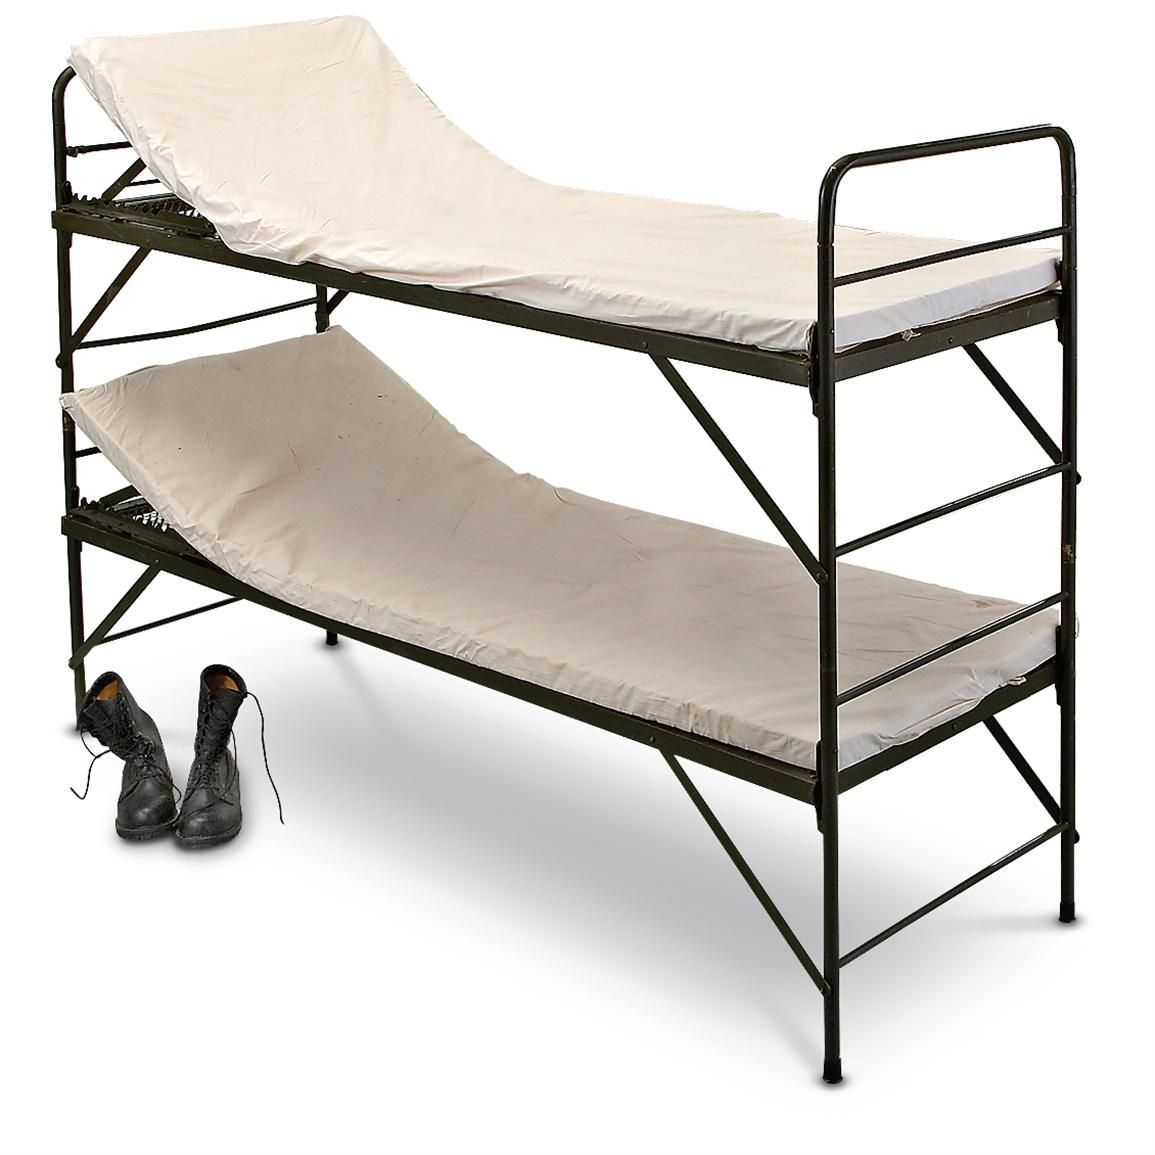 Sportsmans Guide Has Your 4 New German Military Hospital Bunk Beds Available At A Great Price In Our Cots Collection